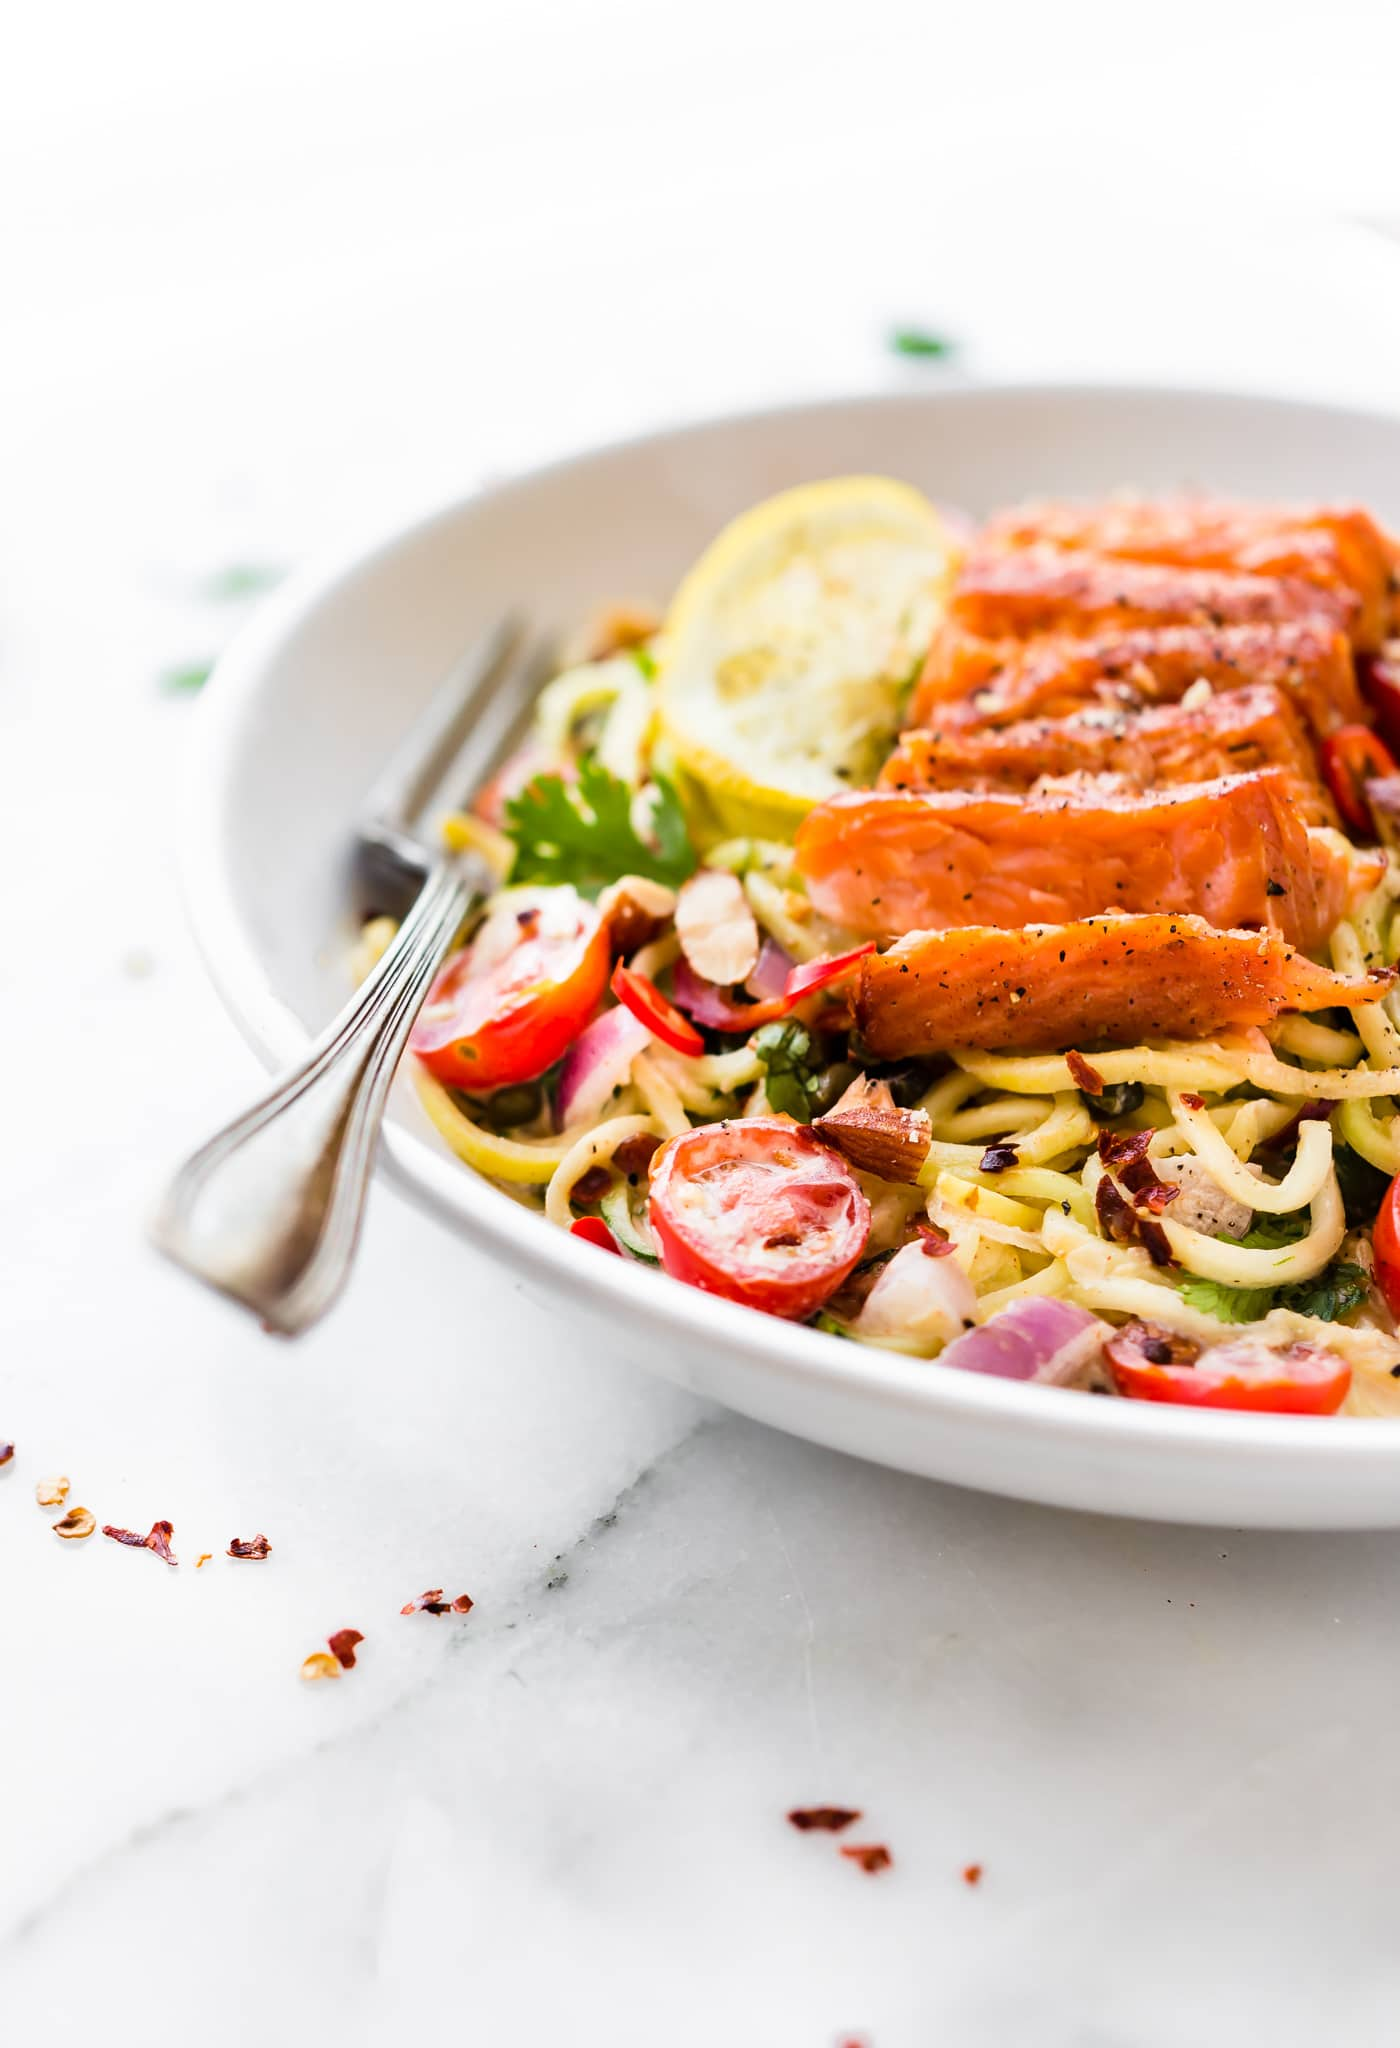 kickin Smoked Salmon Zucchini Noodles salad makes for a perfect no cook meal! Just what we need for Summer, yes? Or anytime really! A zippy cajun sauce tossed in chopped vegetables and zucchini noodles then topped with peppery smoked salmon. It's TO DIE FOR! Paleo and Real food deliciousness!